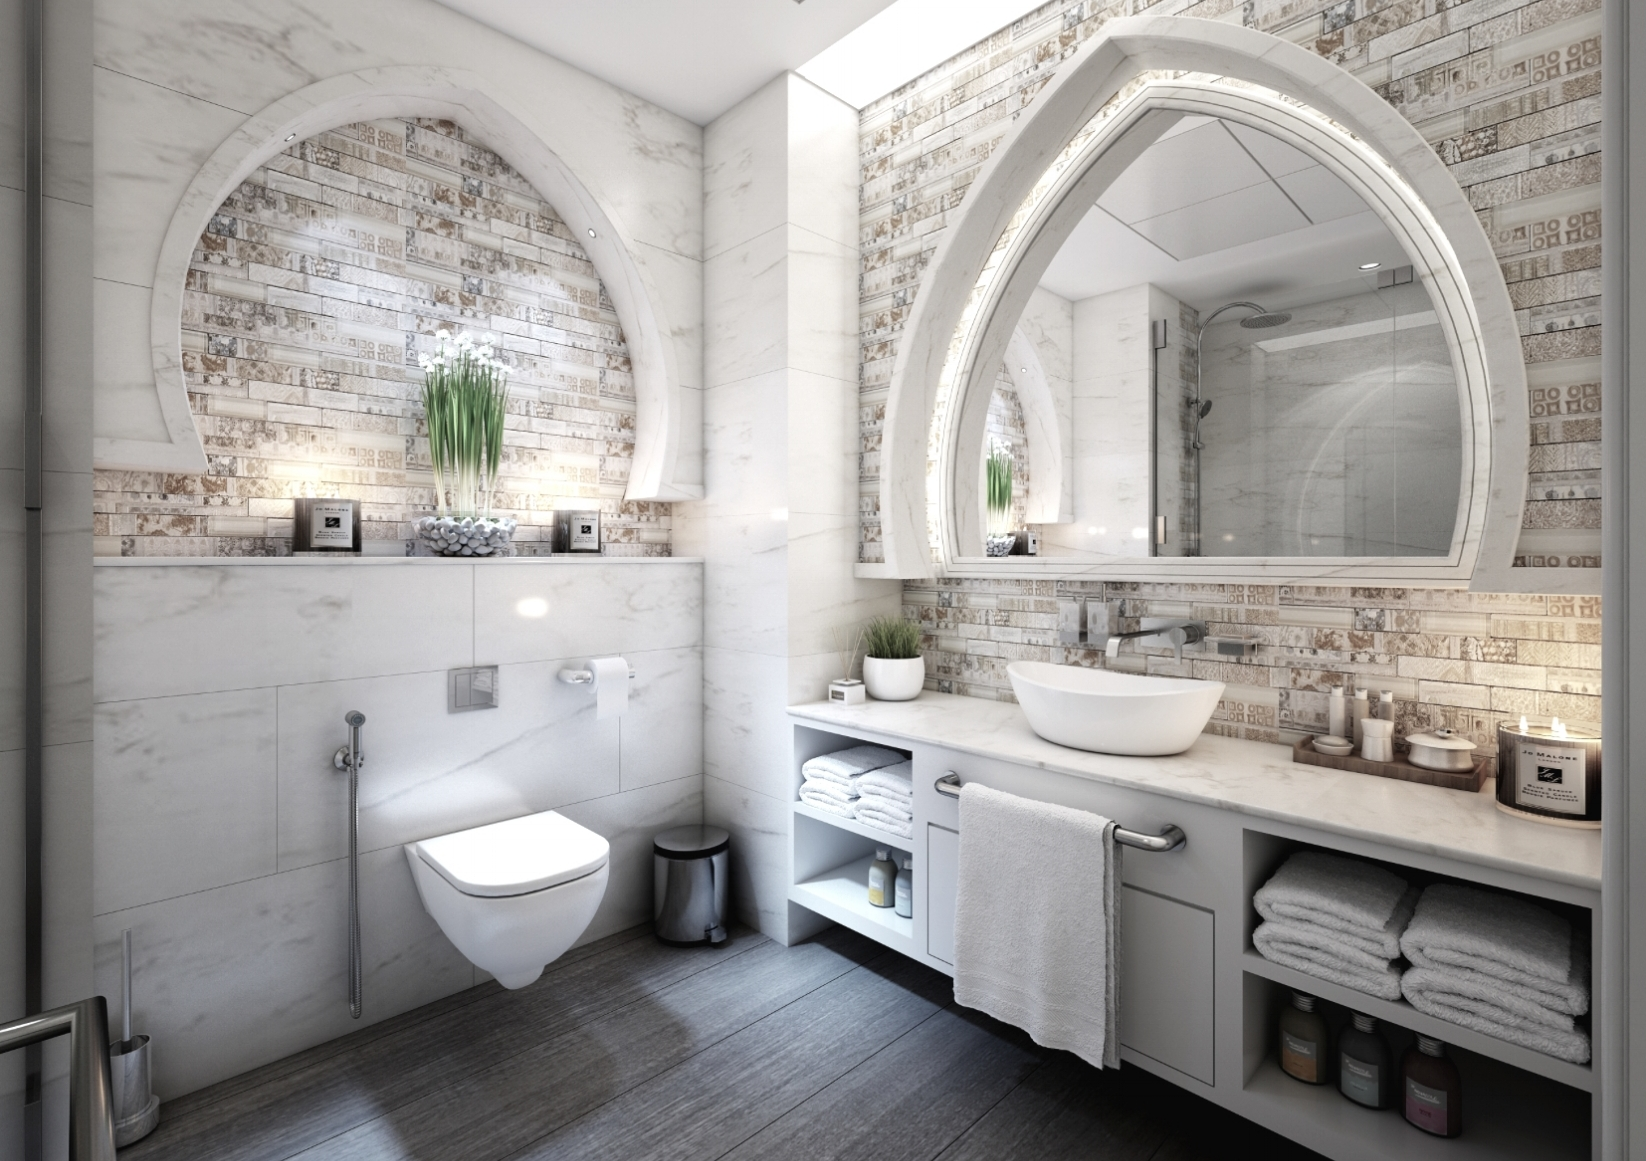 BATHROOM DESIGN - We offer a complete bathroom redesign and installation service including wet rooms and shower rooms. Whether you require a new bathroom design or just refurbishment of an existing bathroom, we tailor our services to your requirements. Contact us to book a consultation to discuss your requirements.